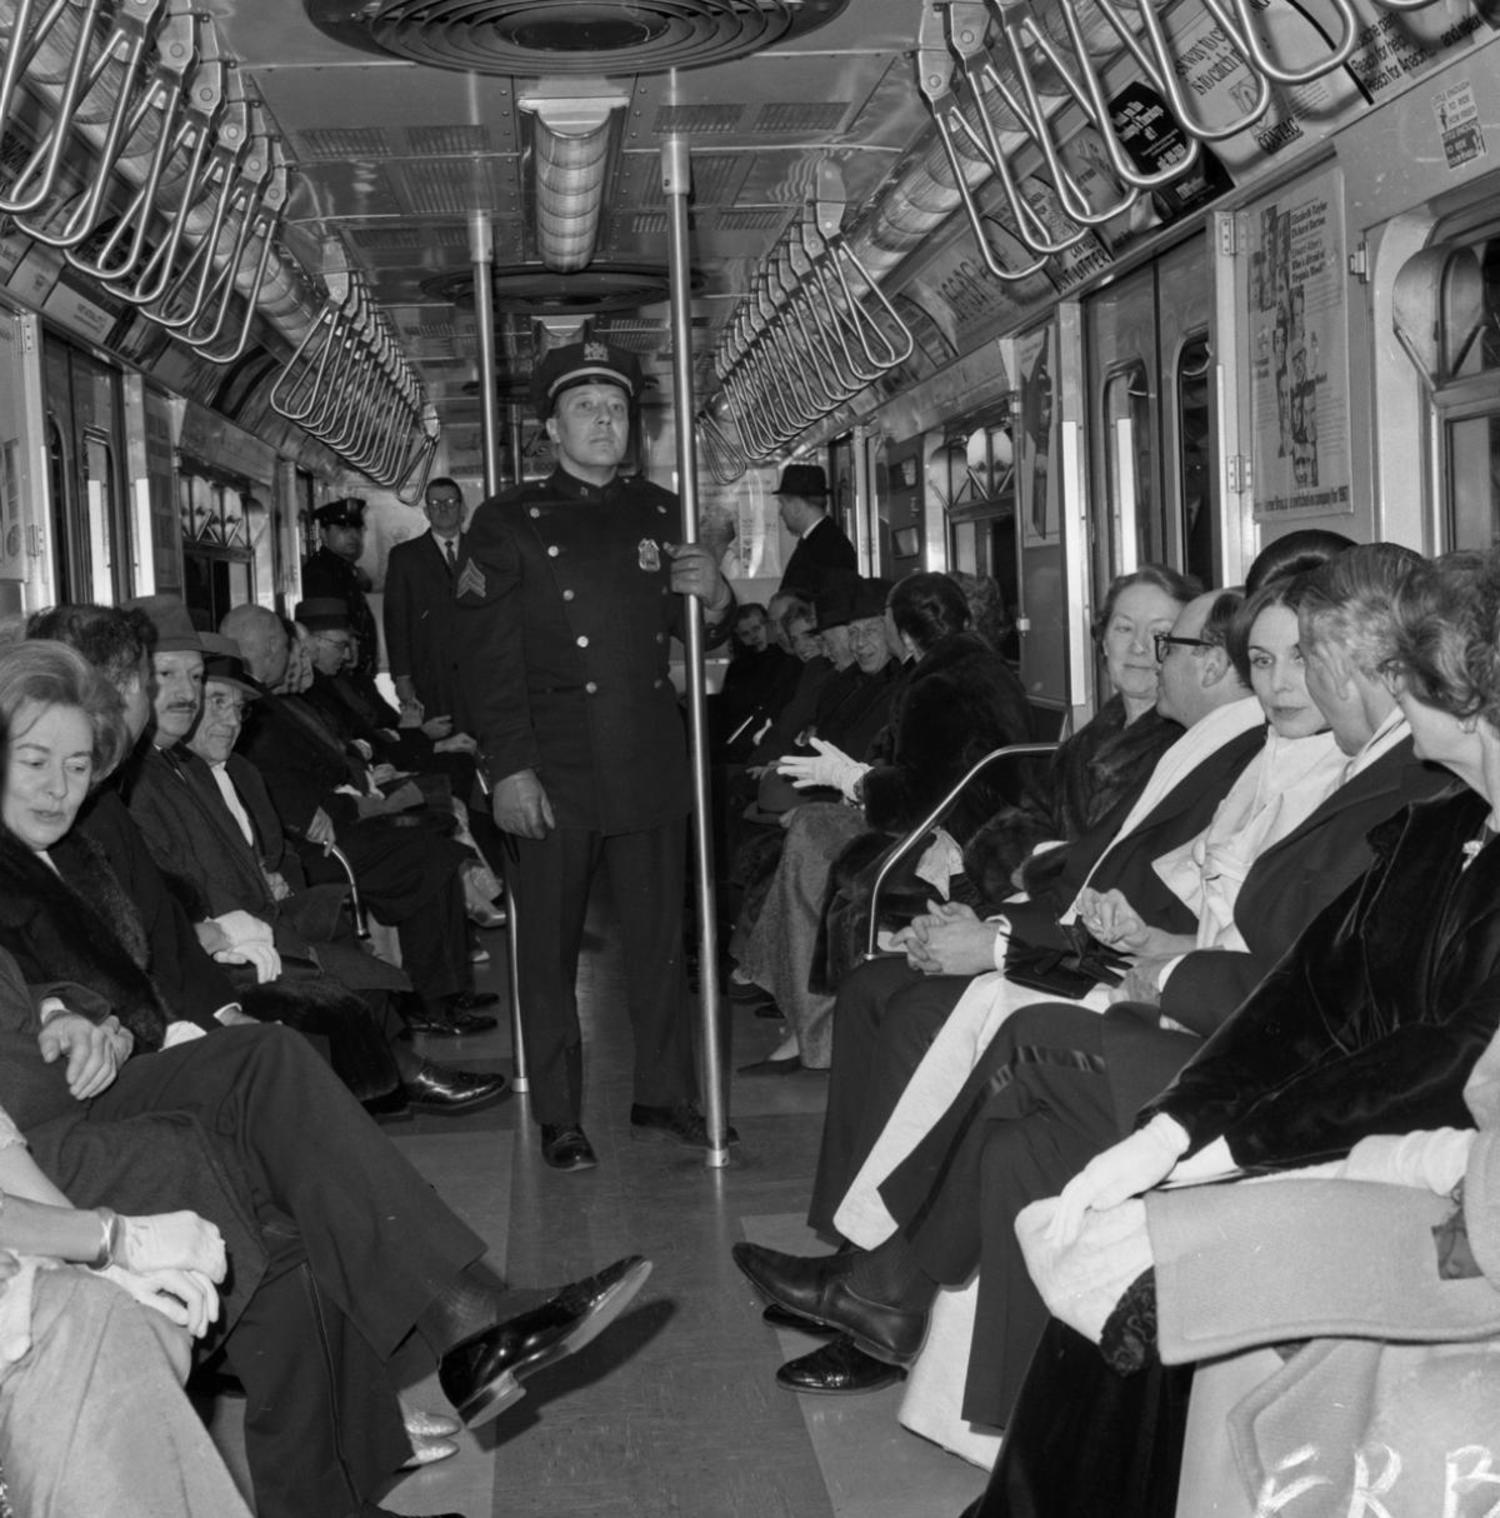 1960's: It's a scene straphangers today might not recognize. While passengers sit aboard a subway train, Transit Authority Sgt. Len Cancelleri patrols the crowded car to ensure that no one aboard gets mugged.